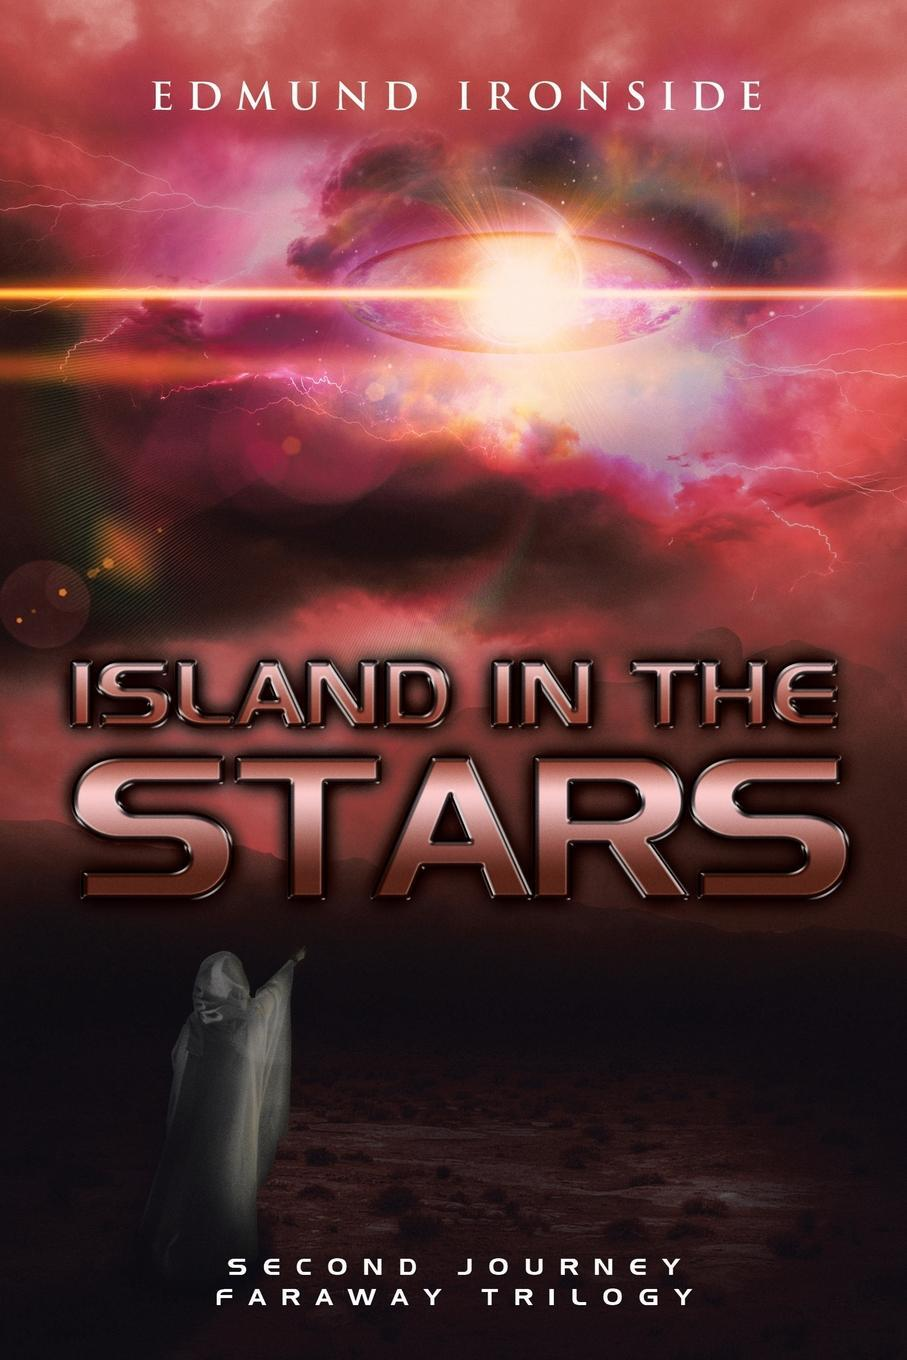 Island in the Stars. Second Journey - Faraway Trilogy